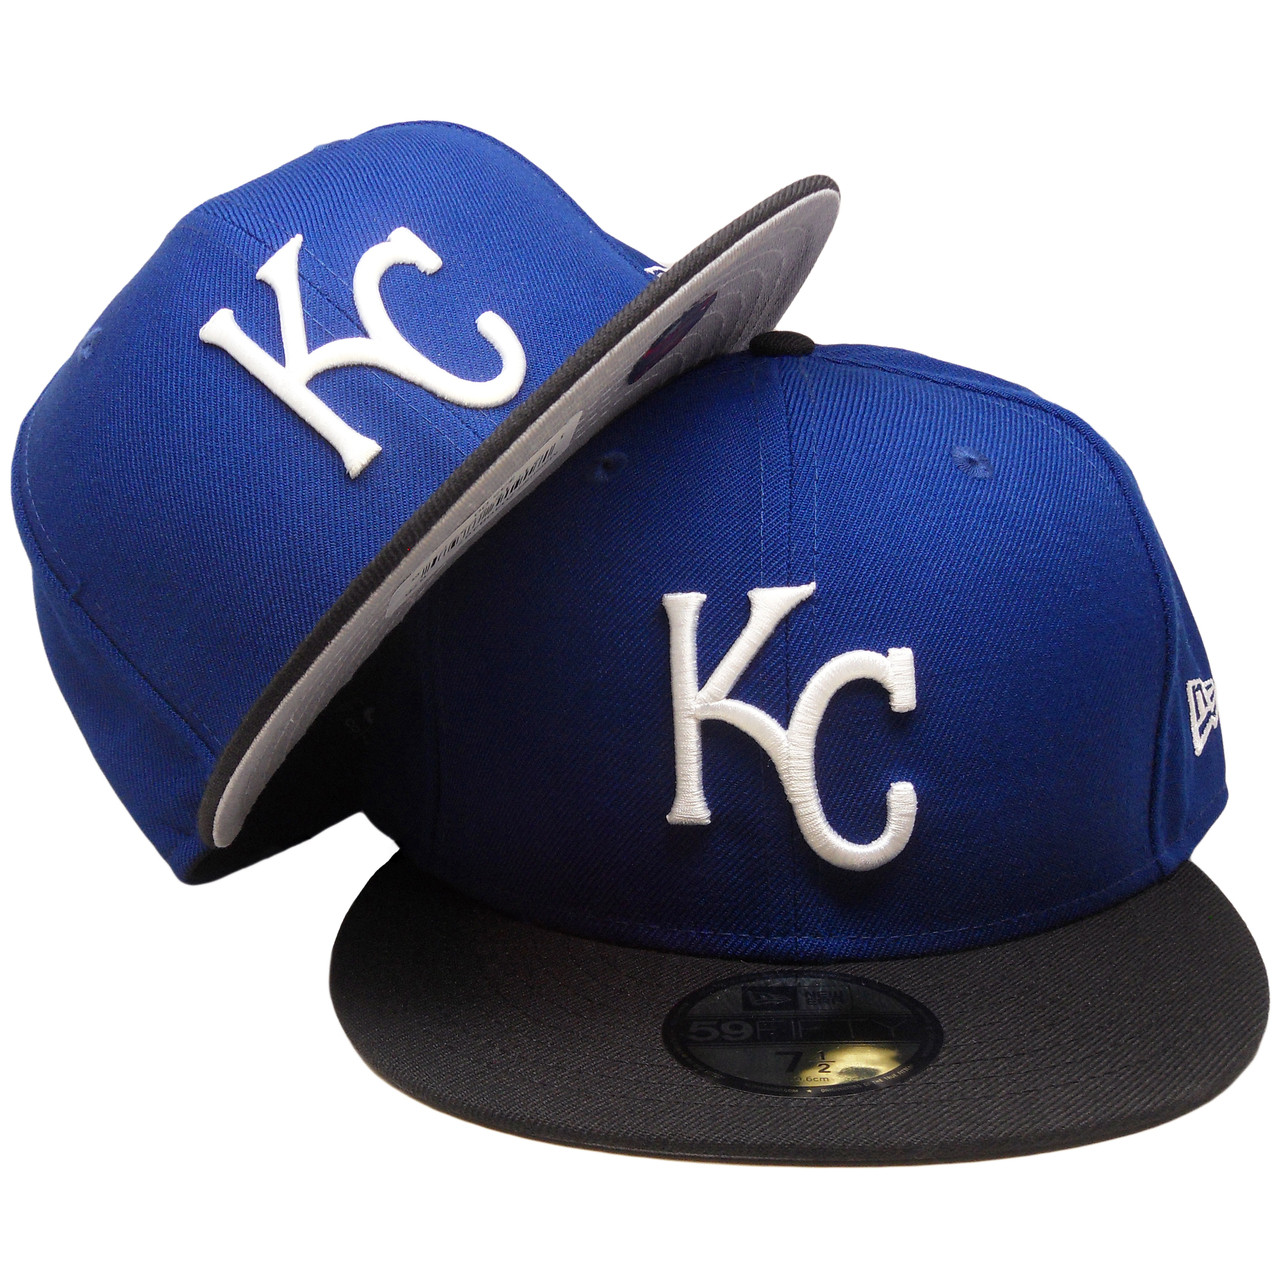 sale retailer b39c9 a7461 Kansas City Royals Custom New Era 59Fifty Fitted - Royal, Black, White -  ECapsUnlimited.com